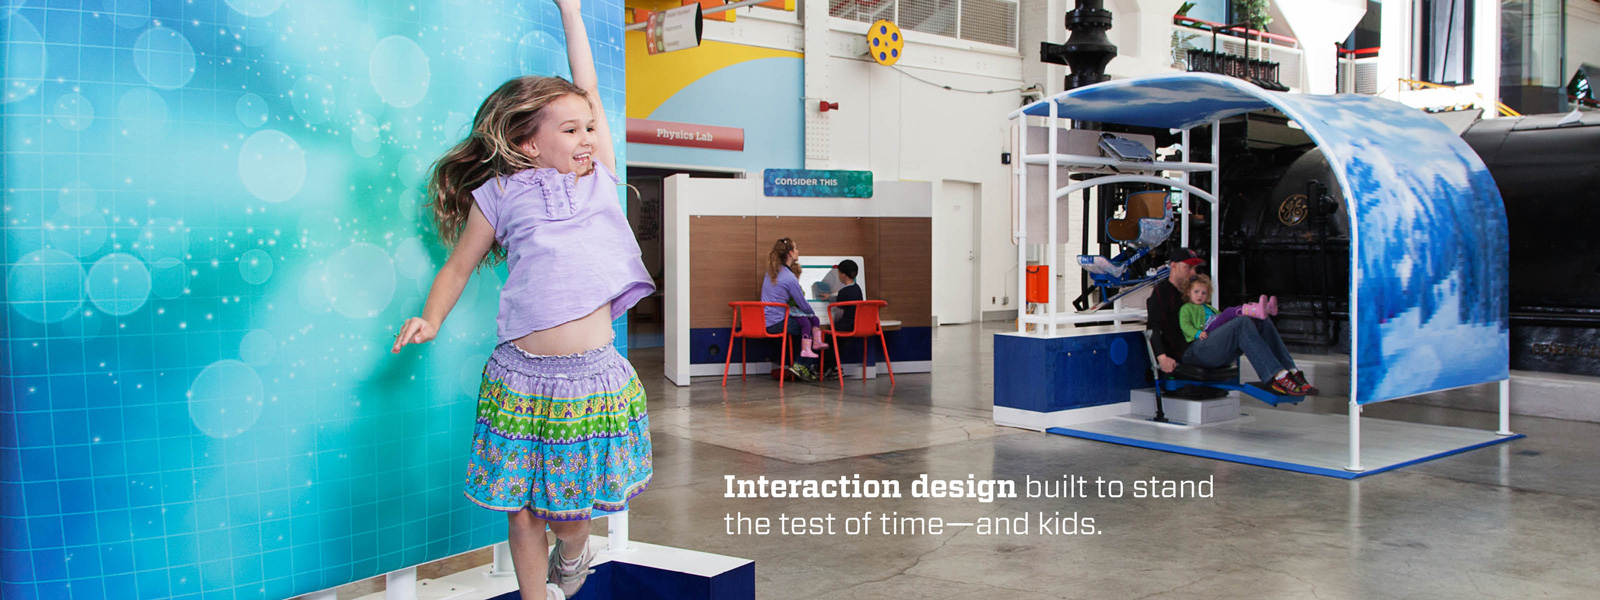 Interaction design built to stand the test of time - and kids. Girl jumping while interacting with Human Plus exhibit.